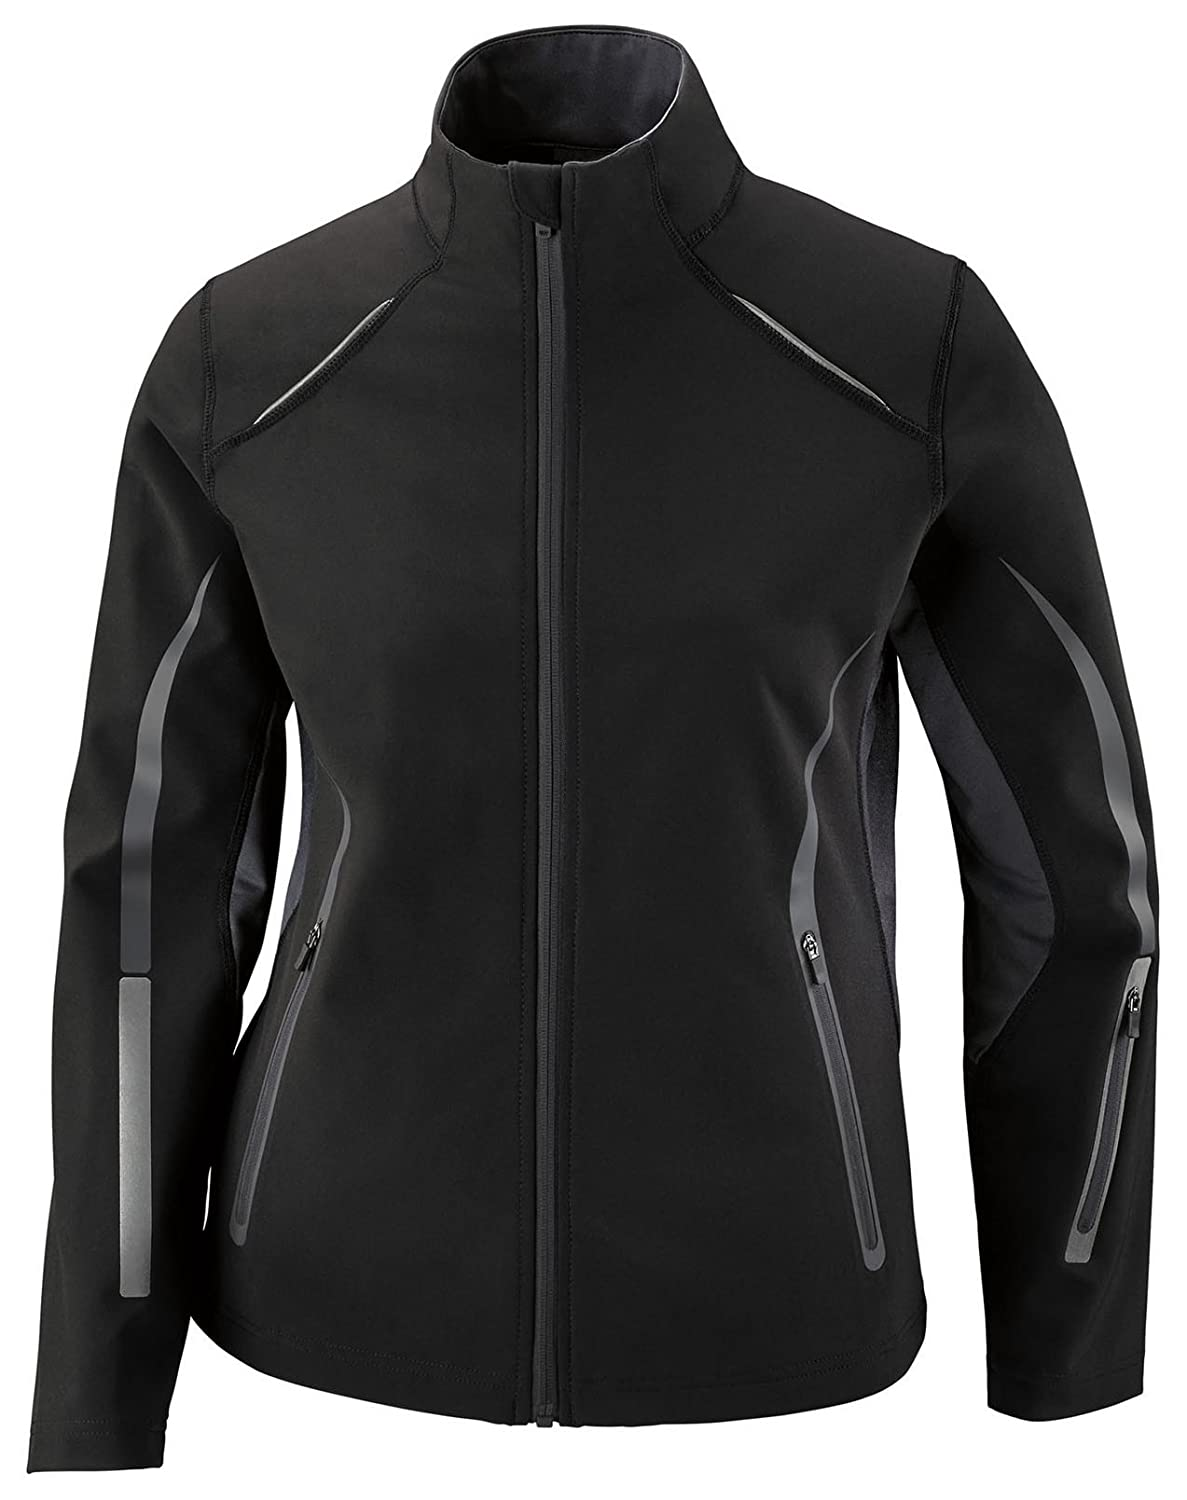 Pursuit Ladies 3-Layer Light Bonded Hybrid Soft Shell Jacket With Laser Perf...